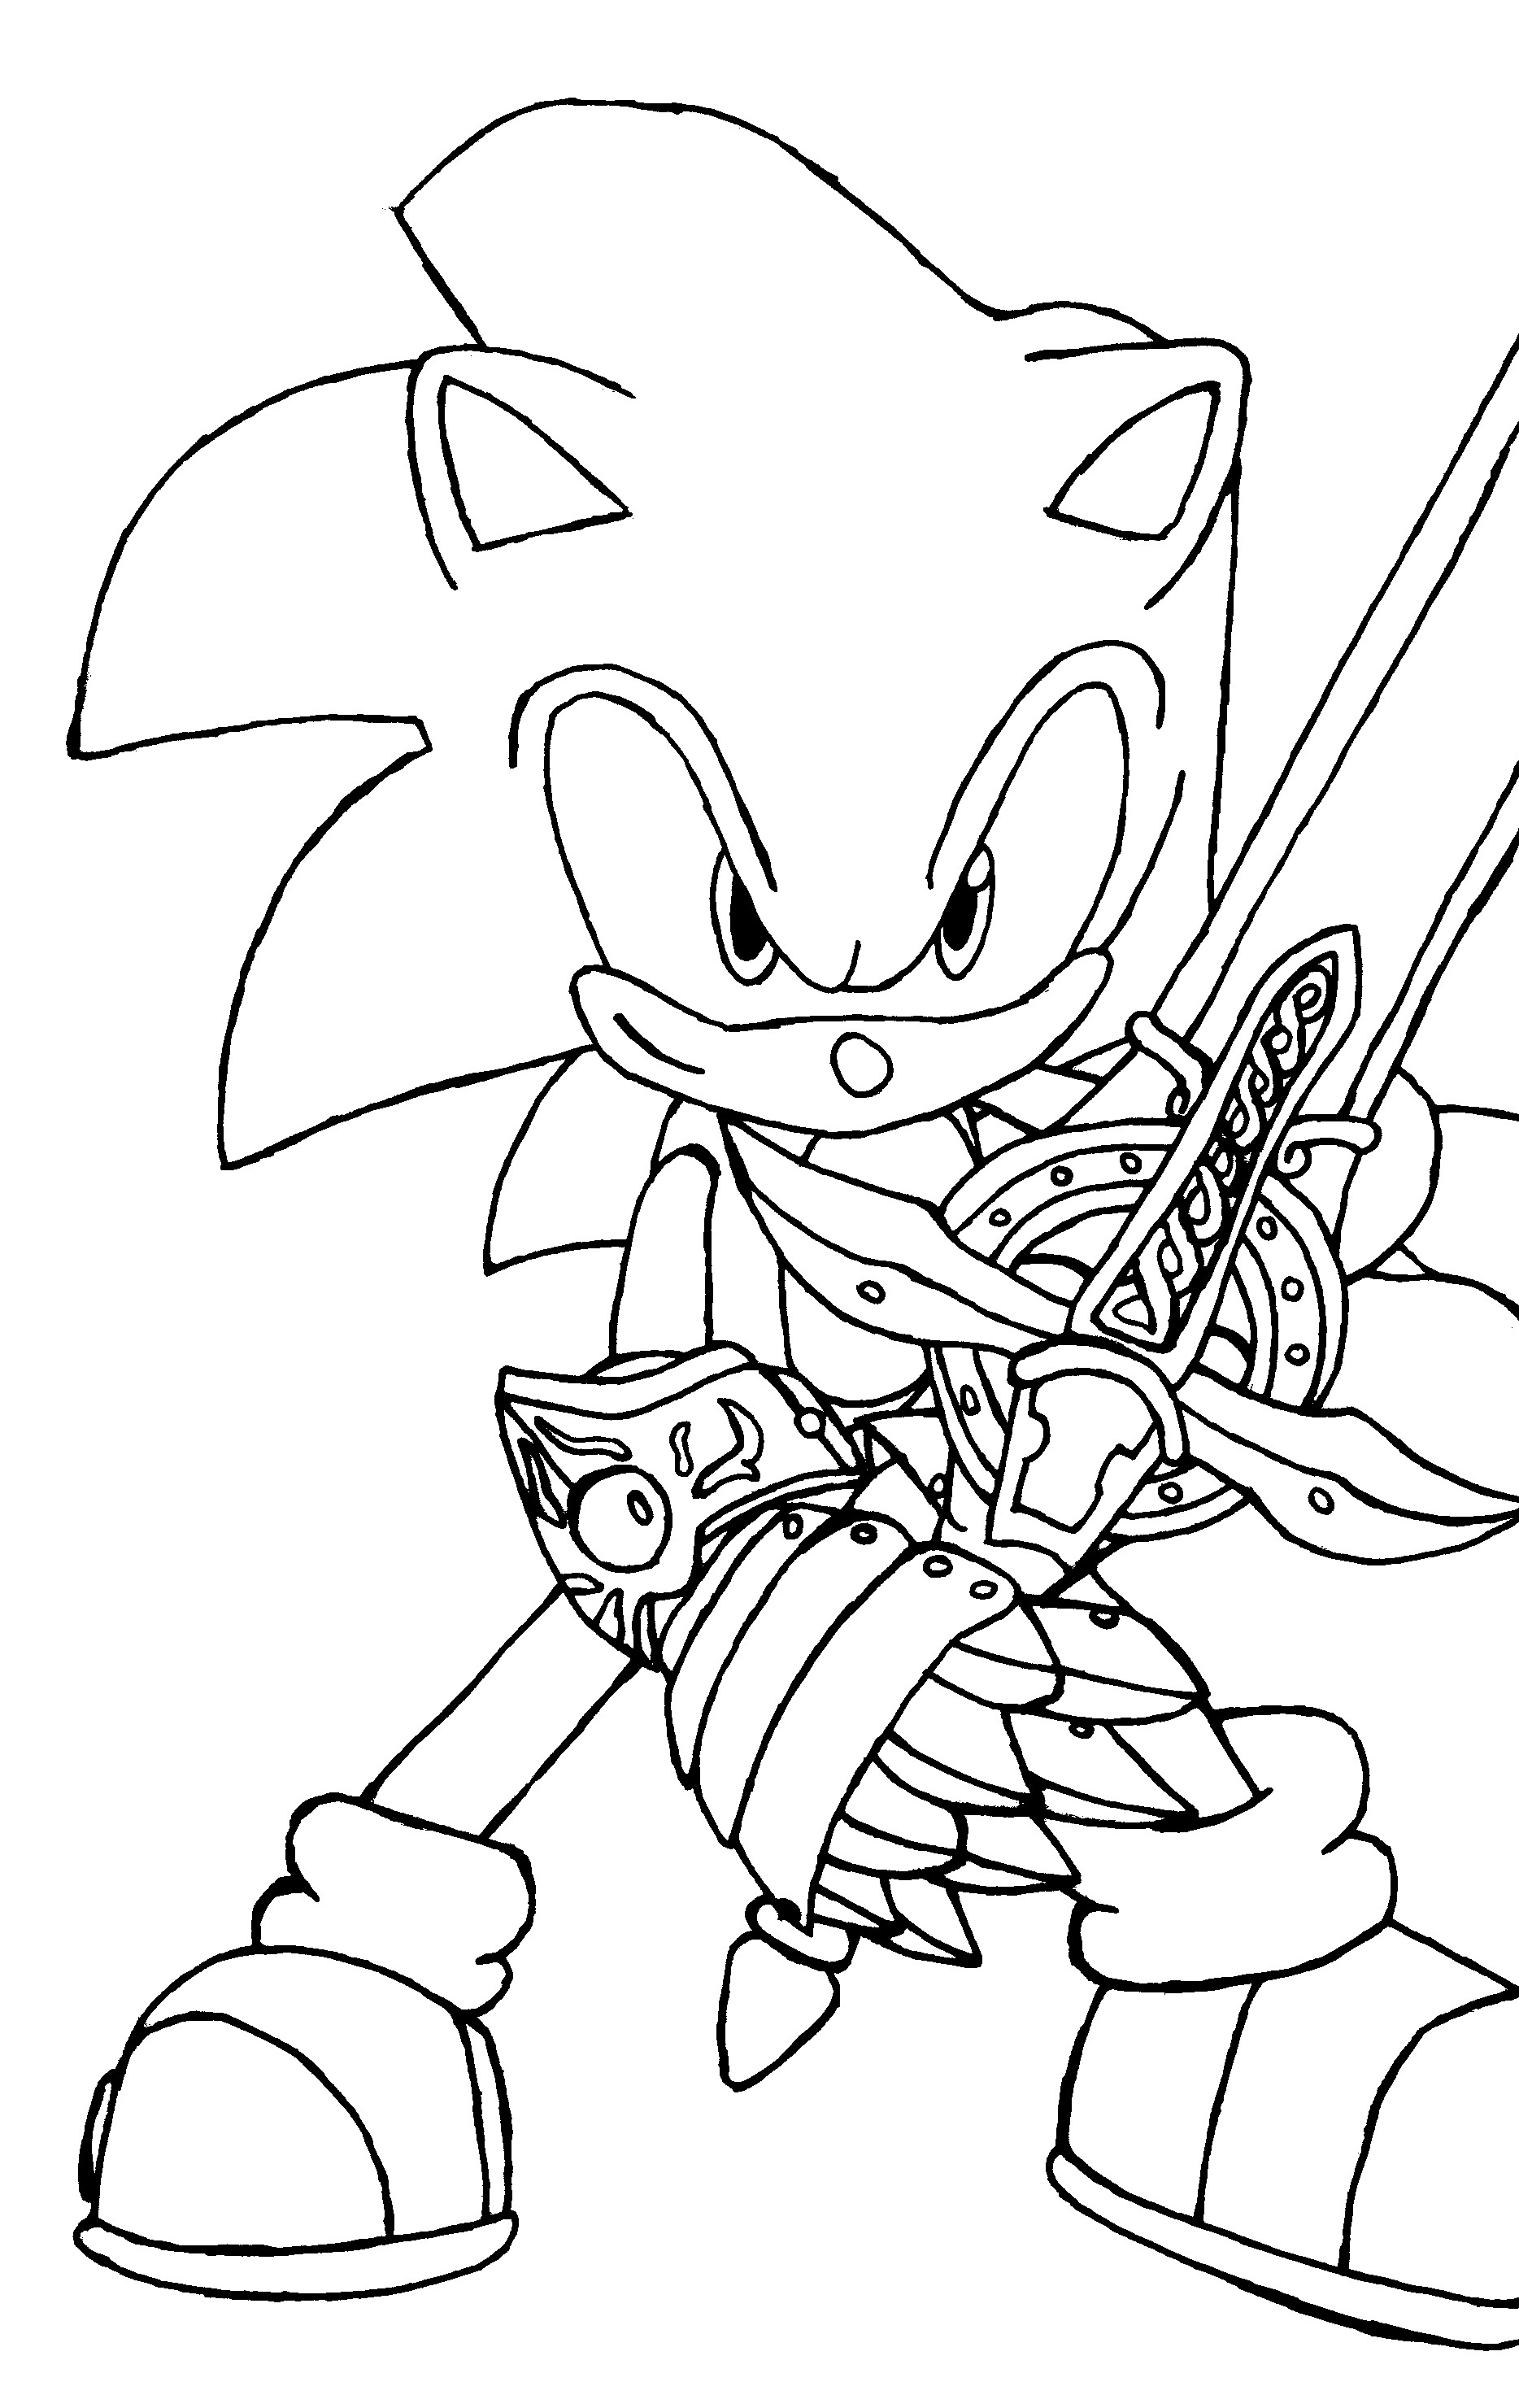 coloring book printable up coloring pages to download and print for free coloring printable book